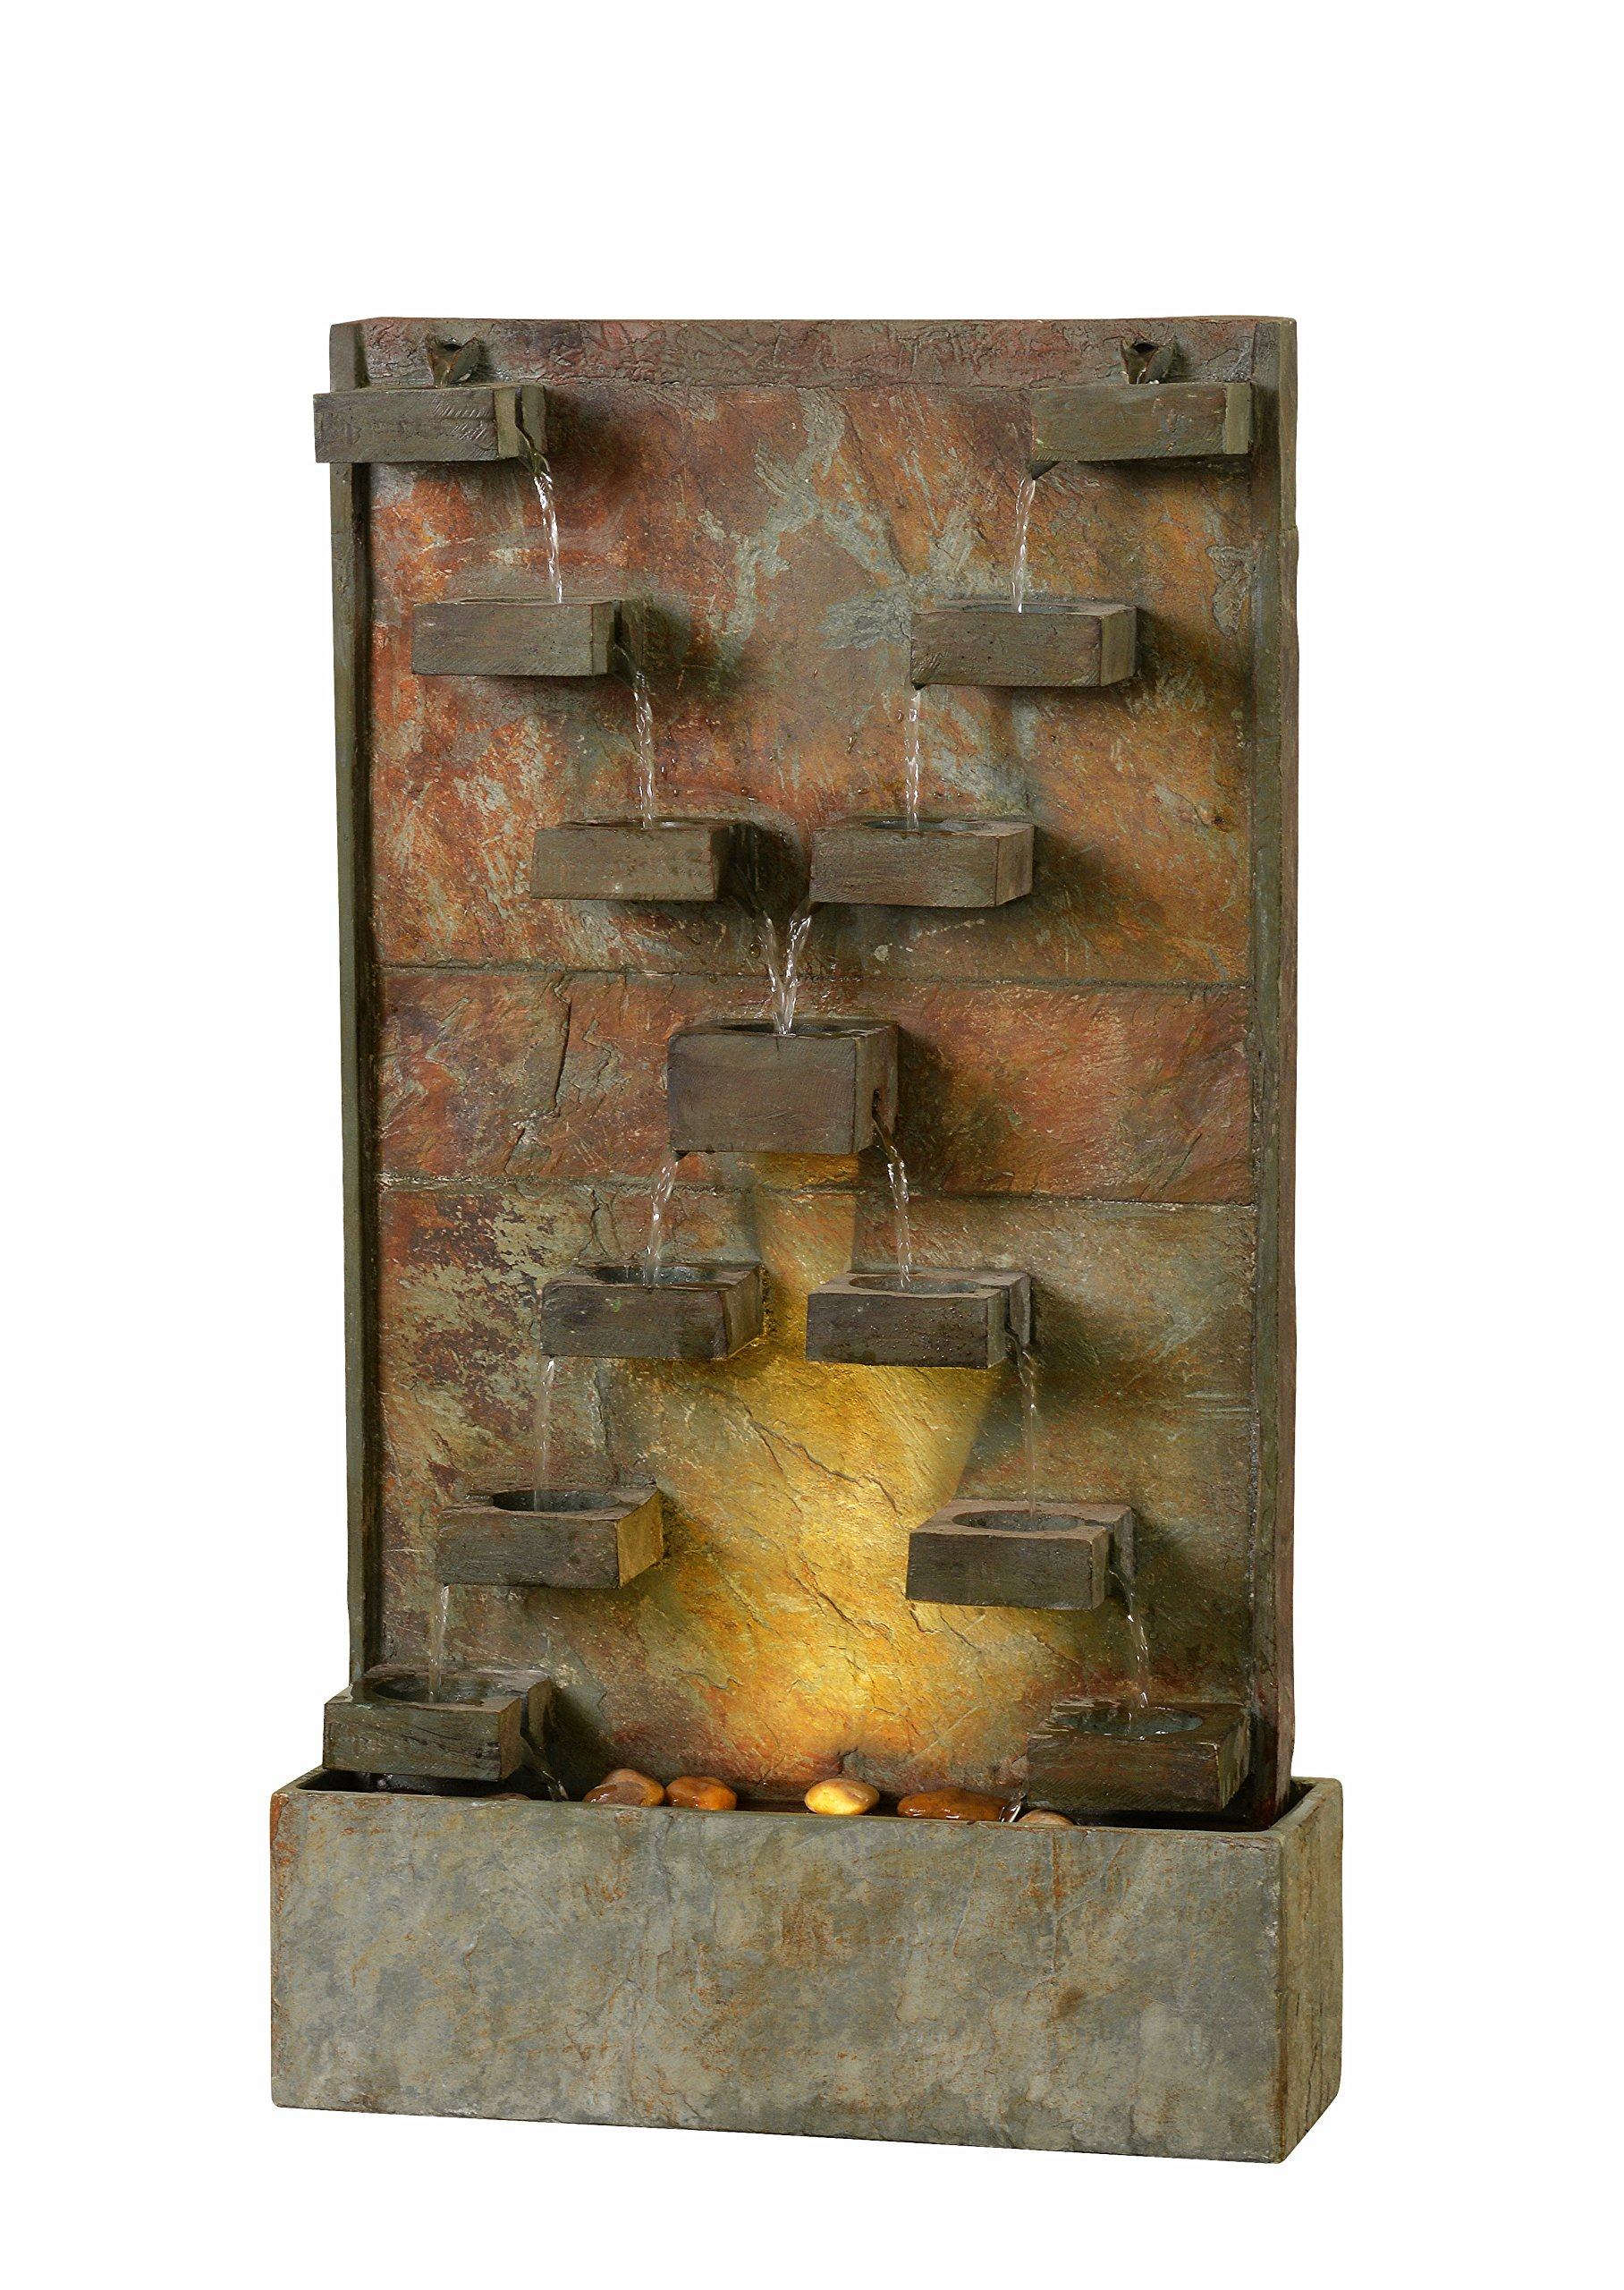 Kenroy Home 51033SL Voyage Indoor/Outdoor Floor Fountain with Light, 33 Inch Height Natural Slate